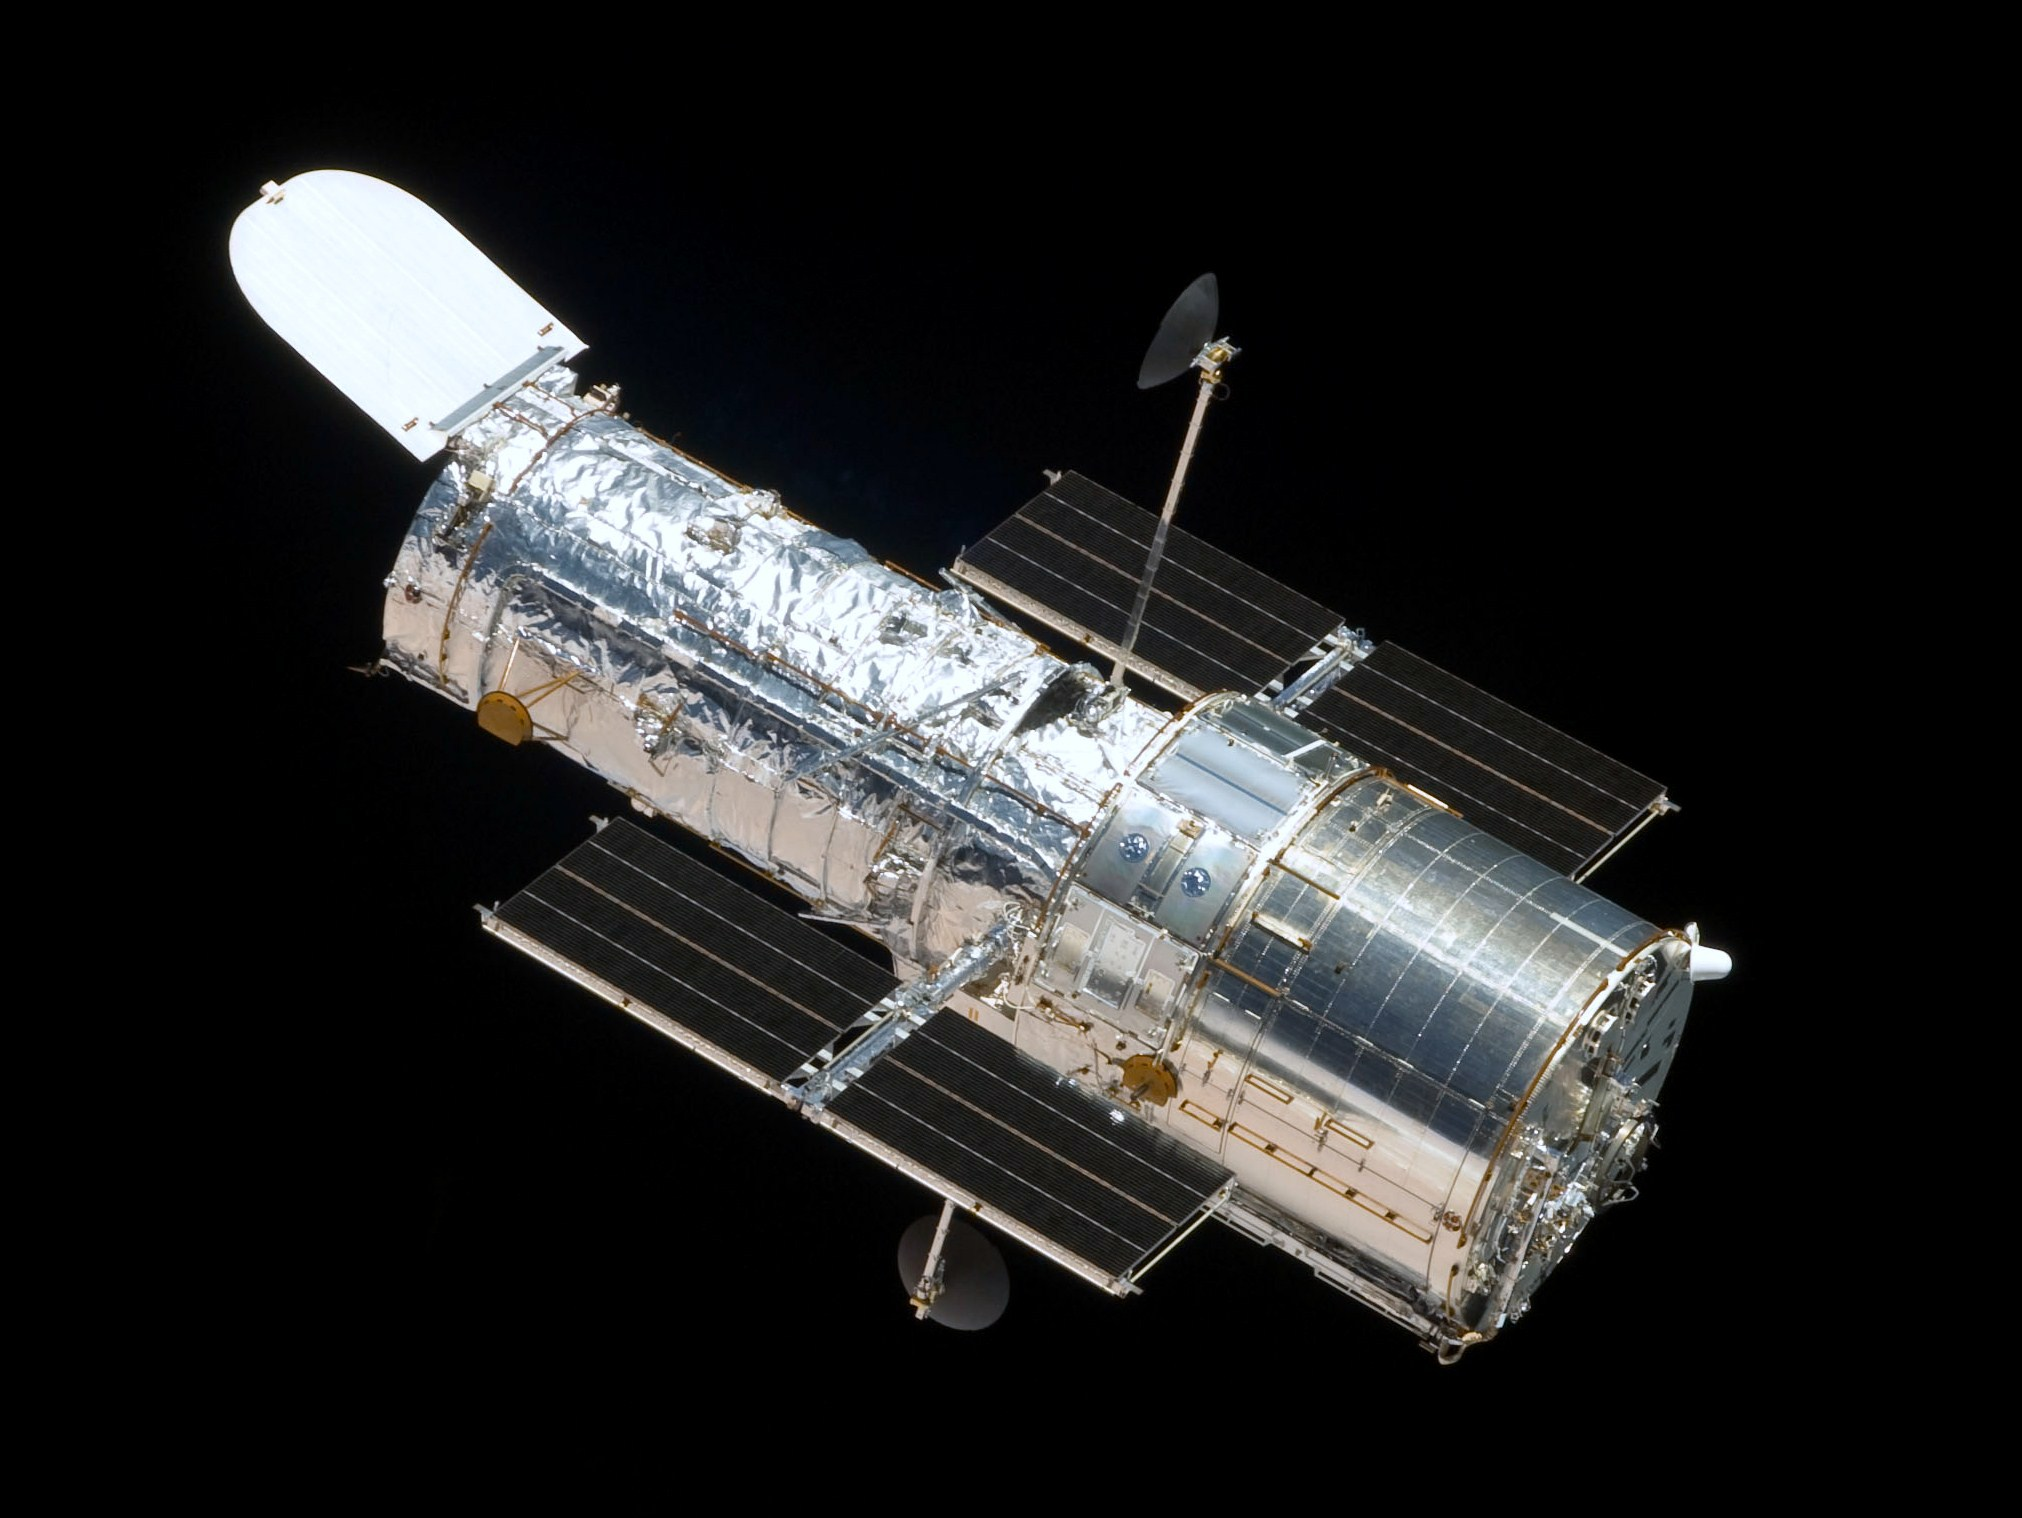 How much did the Hubble space telescope cost?